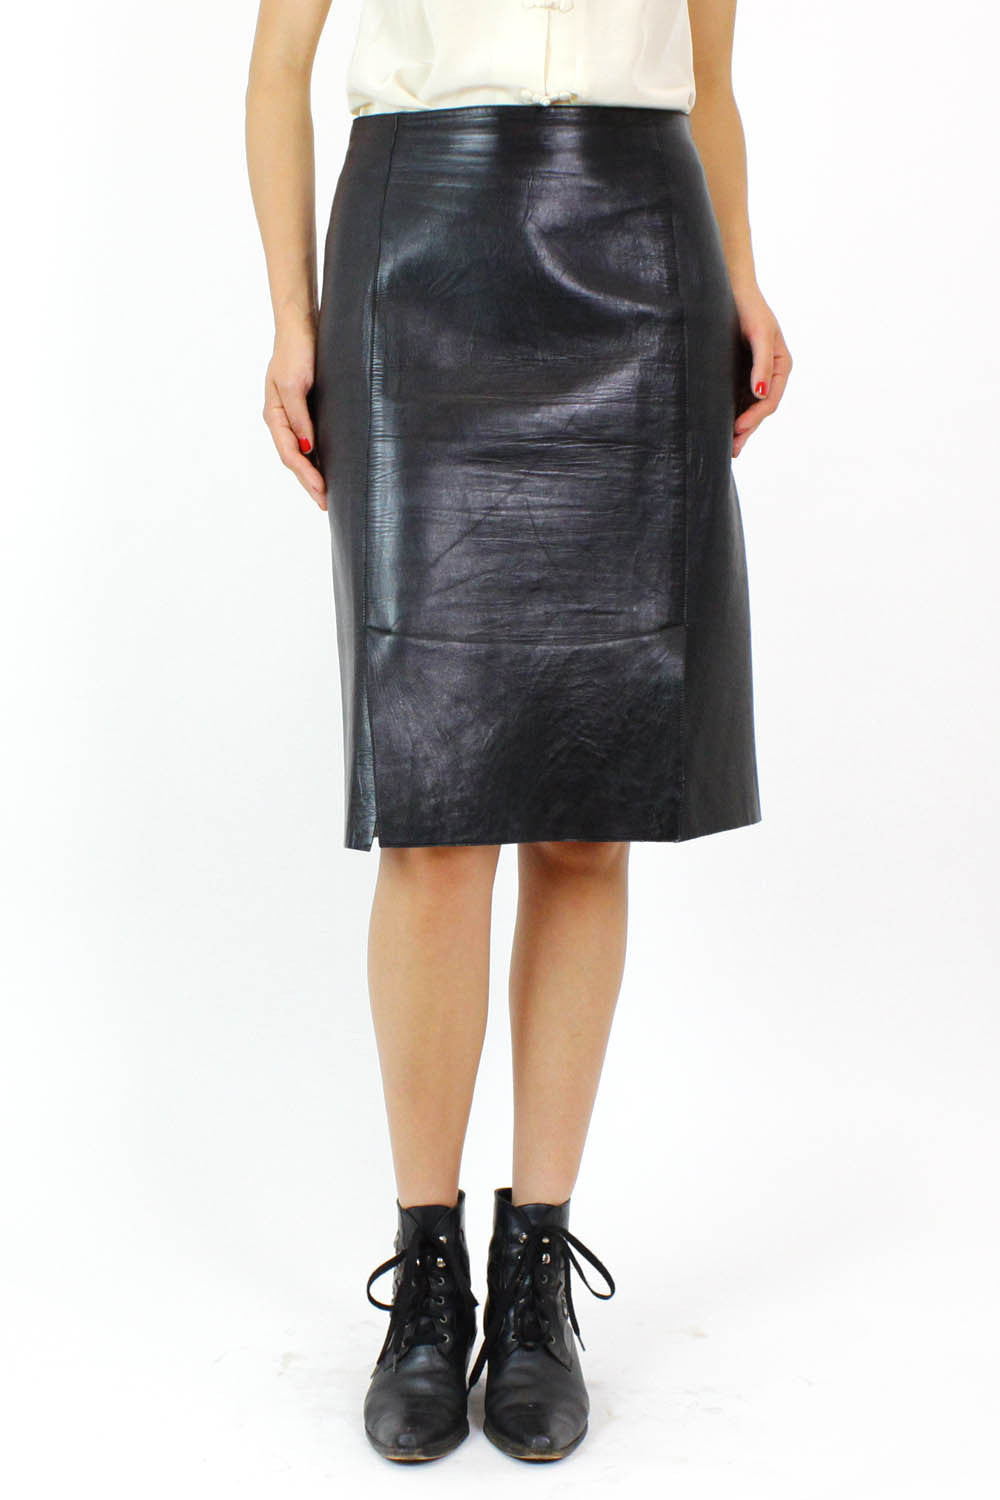 Prada gladiator leather panel skirt M